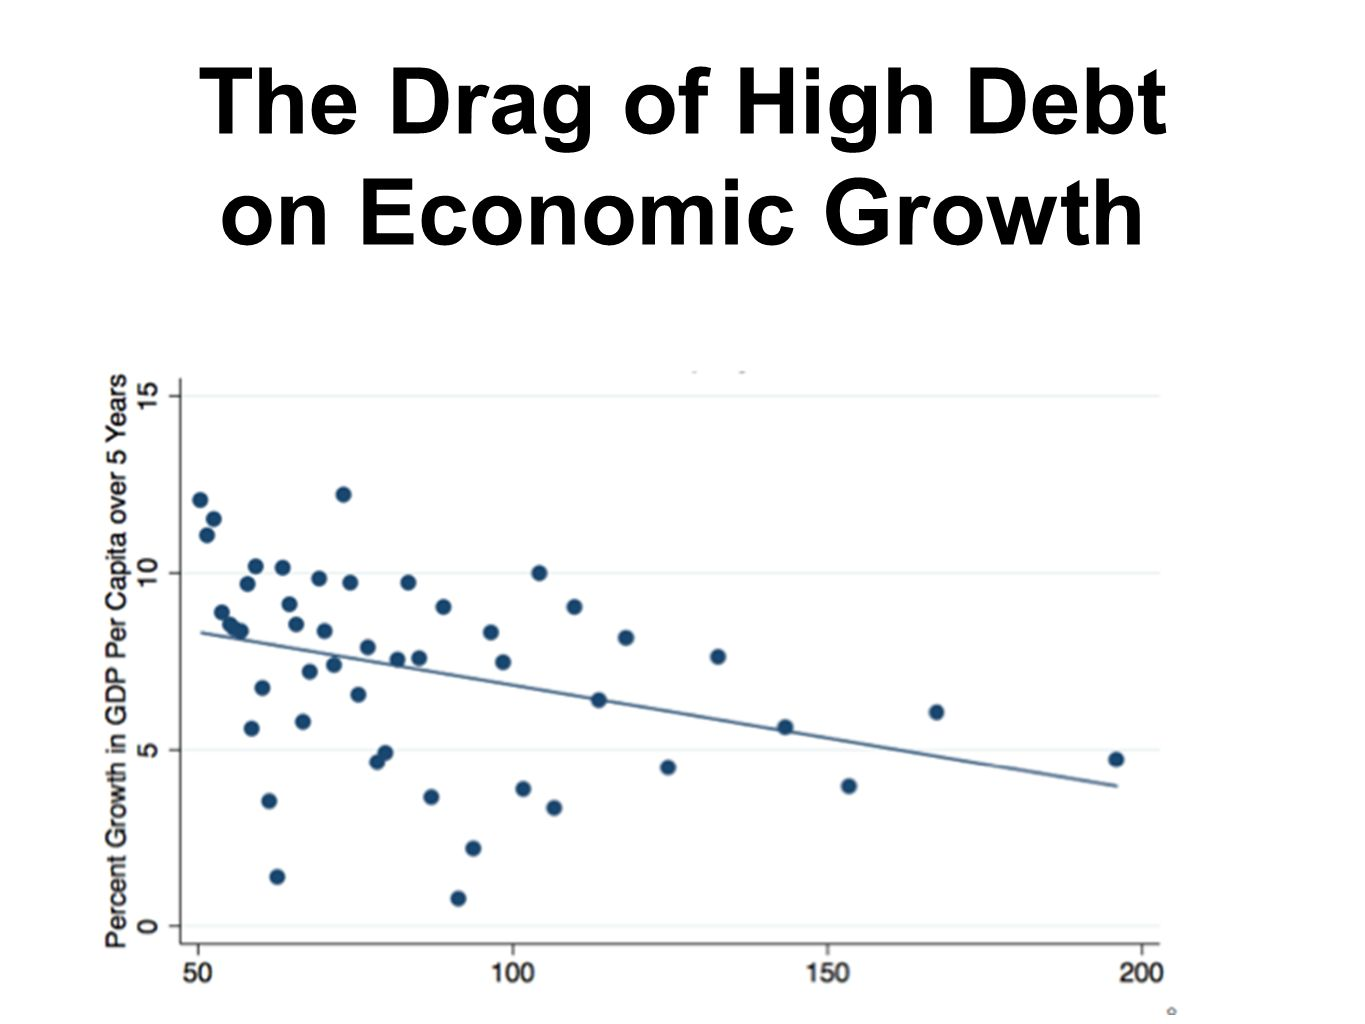 The Drag of High Debt on Economic Growth